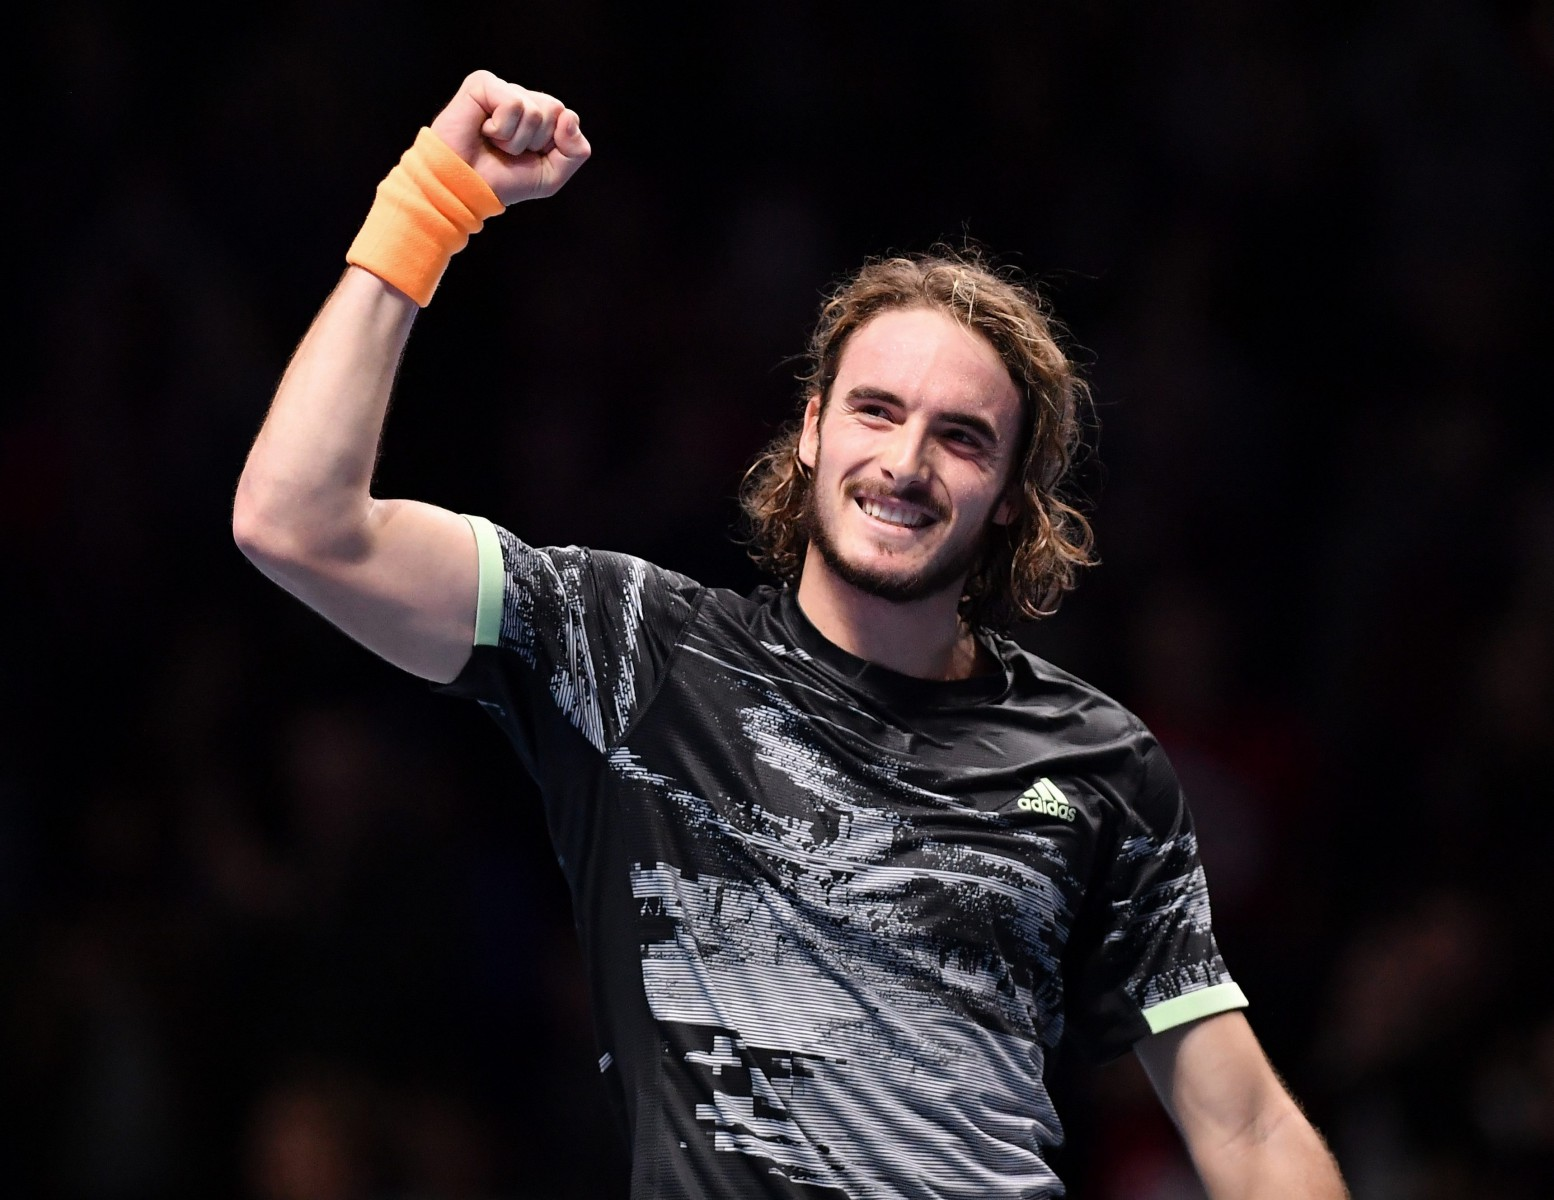 Stefanos Tsitsipas was too good for Roger Federer this afternoon and qualified for the ATP Finals final on his debut appearance